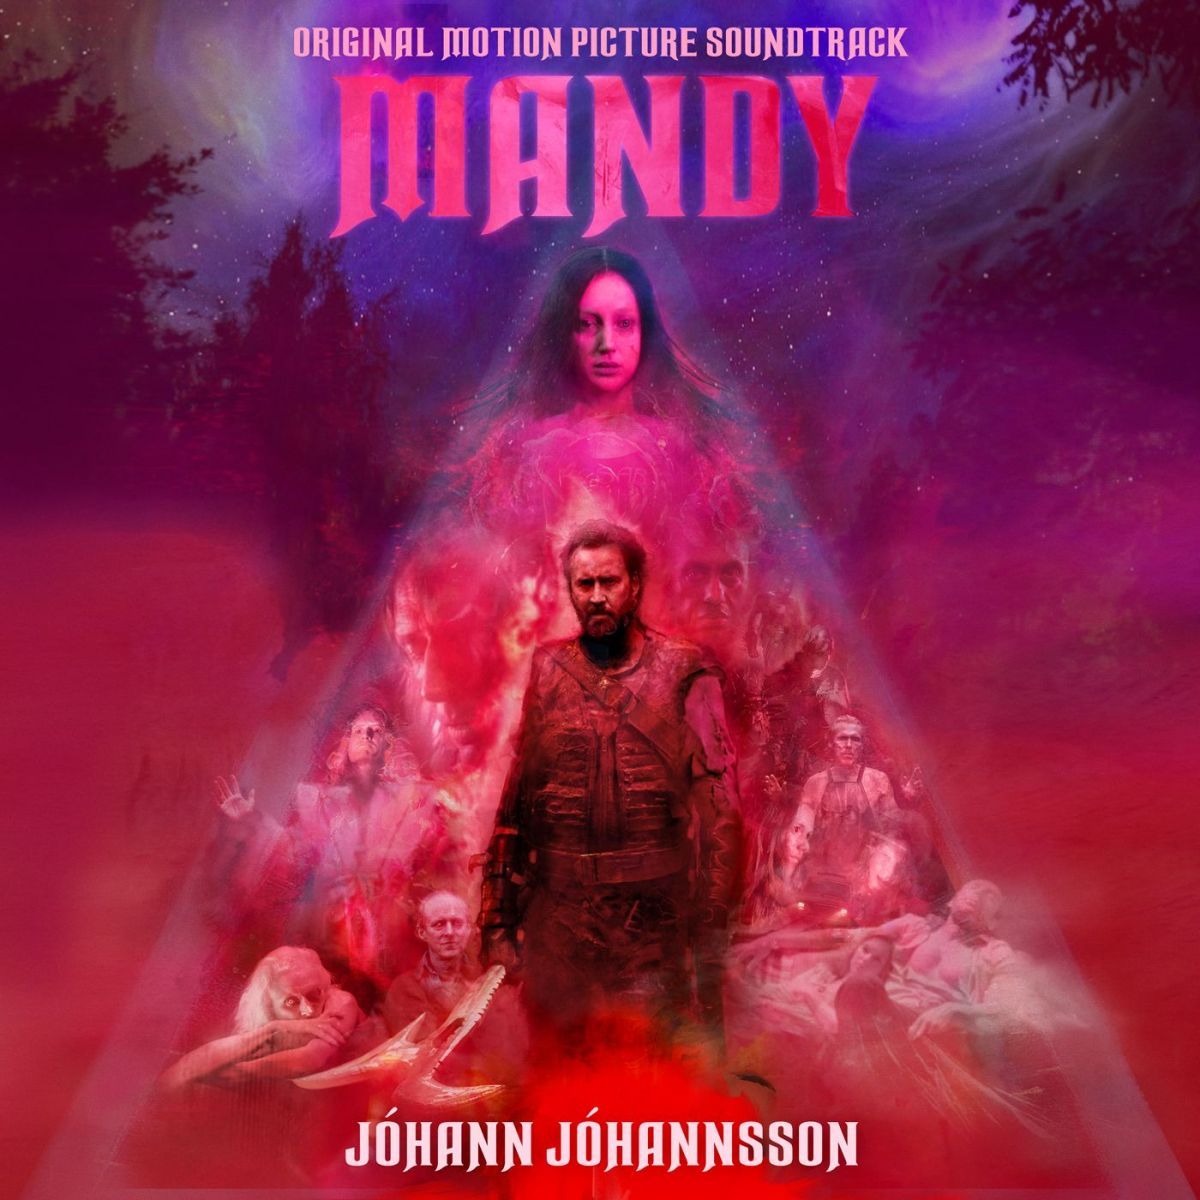 Johann Johannsson's Incredible 'Mandy' Soundtrack